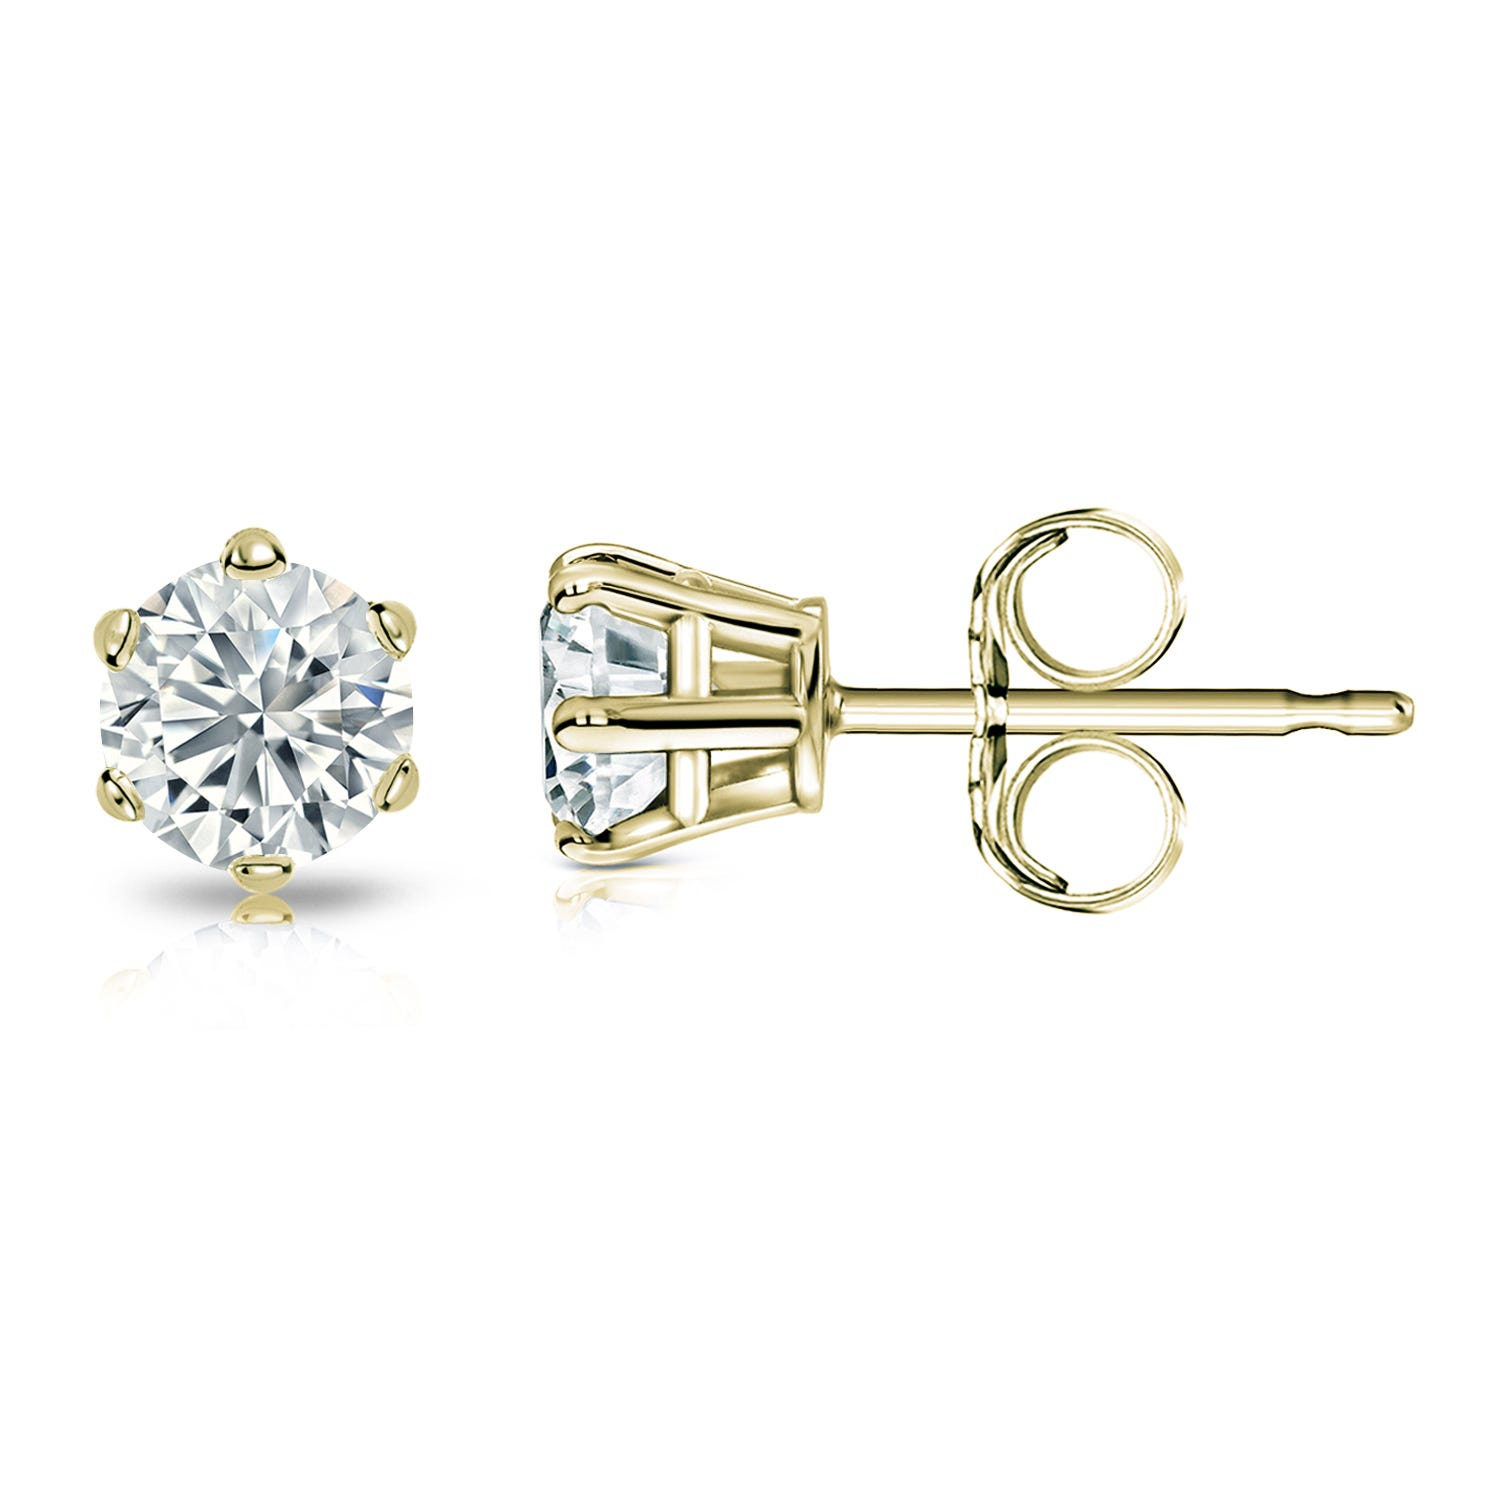 Round Diamond 3/4ctw. (IJ-I2) Solitaire Stud 6-Prong Earrings in 14K Yellow Gold